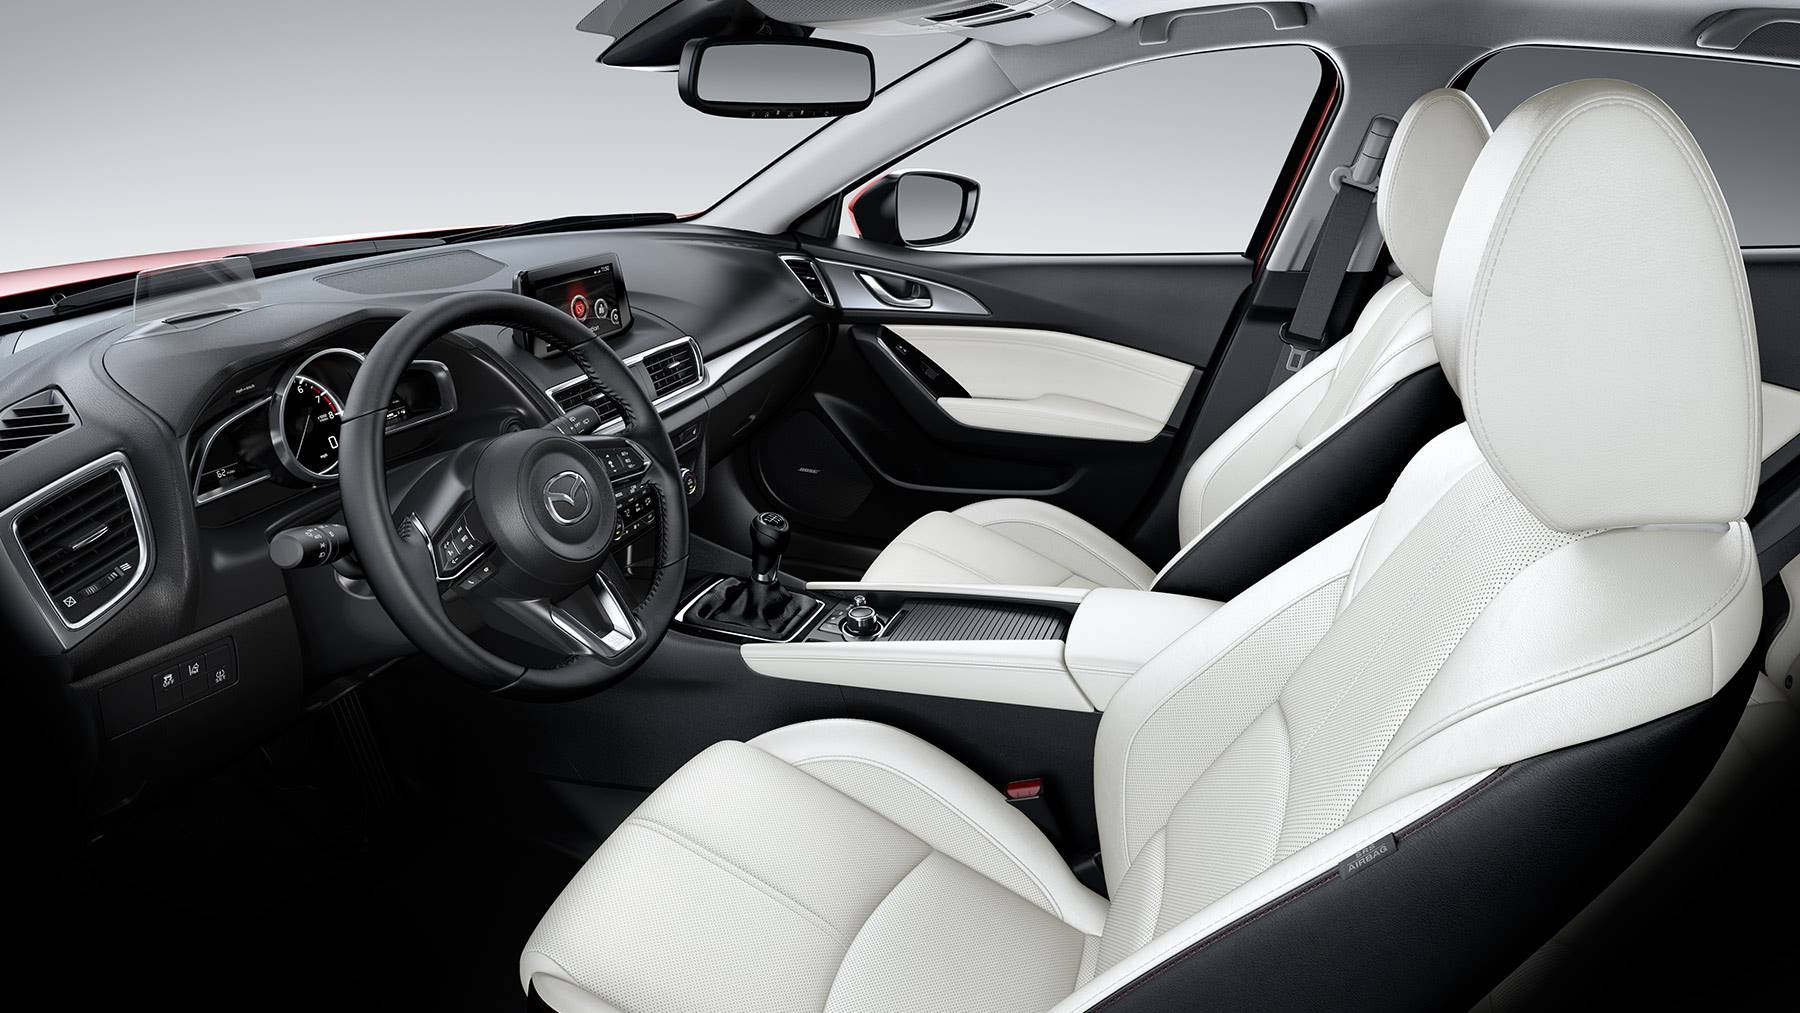 There's Plenty of Amenities in the Mazda3!